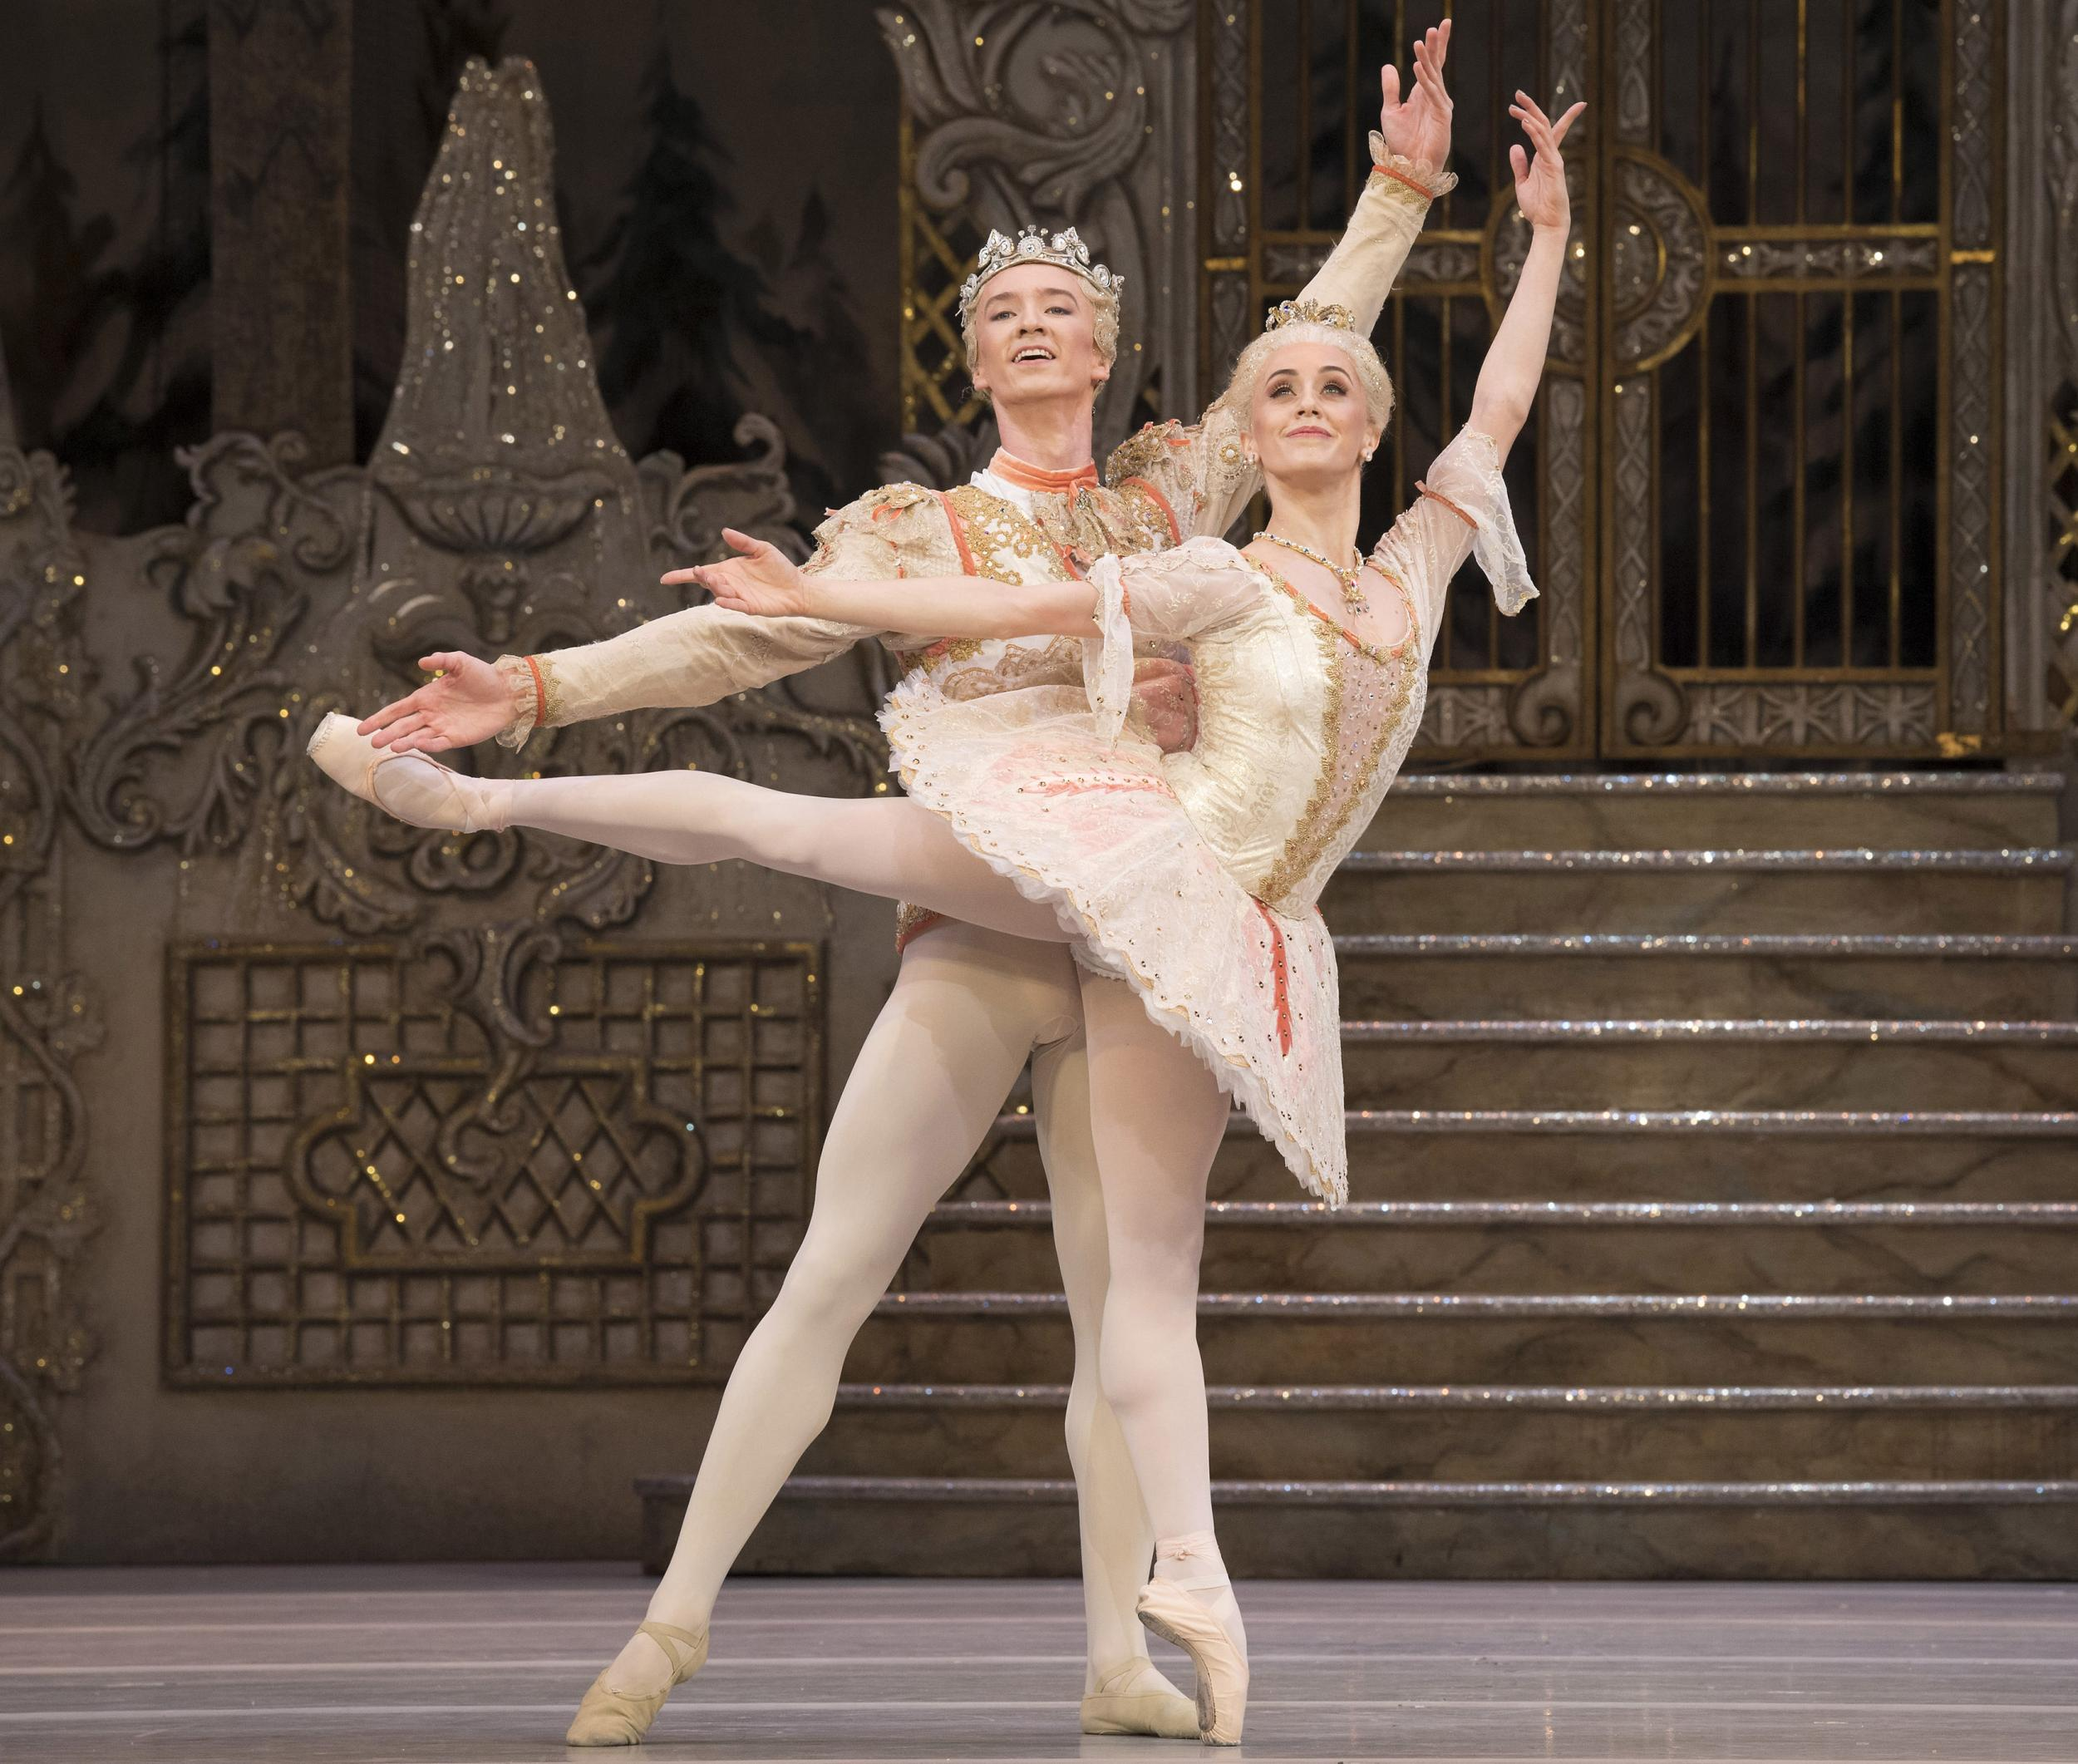 1100266509c39a The Nutcracker review, Royal Ballet, London: Inevitable Christmas  performance has gorgeous dancing and impressive production